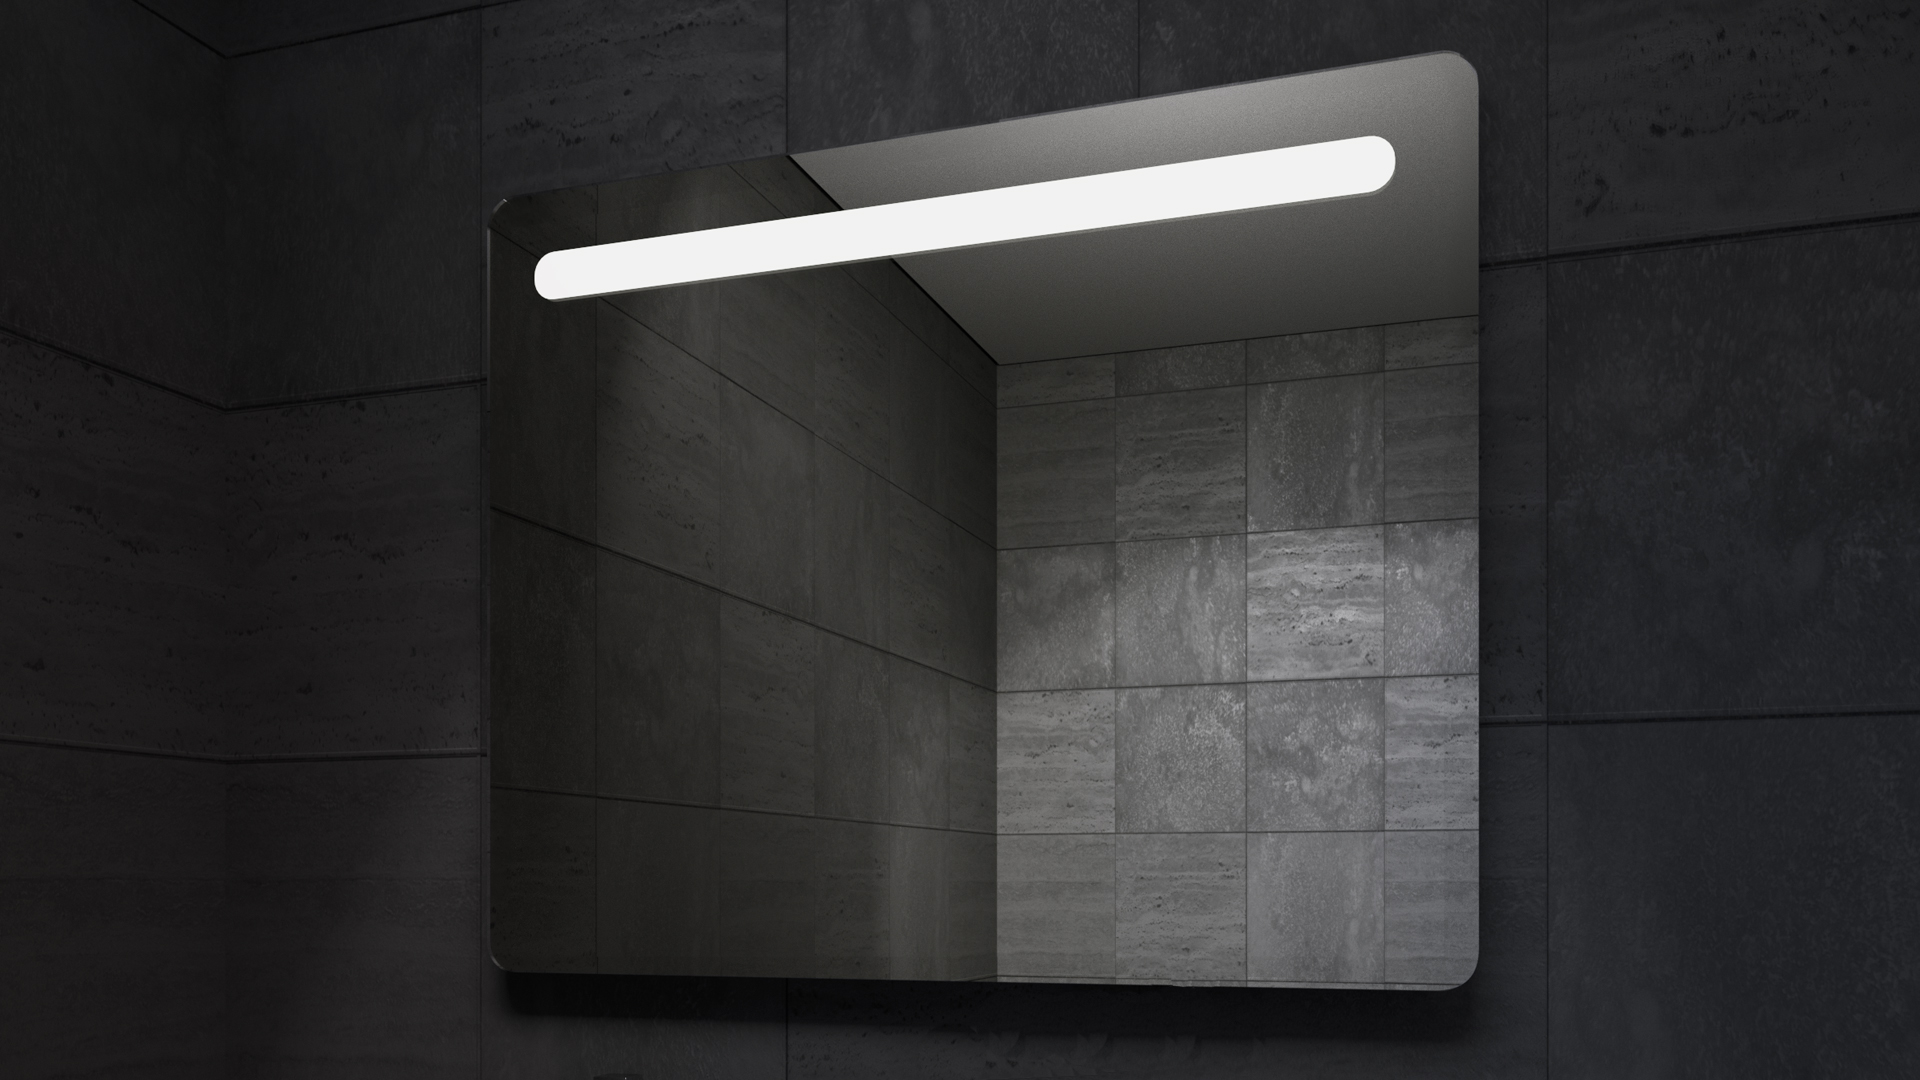 Calipso LED Mirror in Darkness